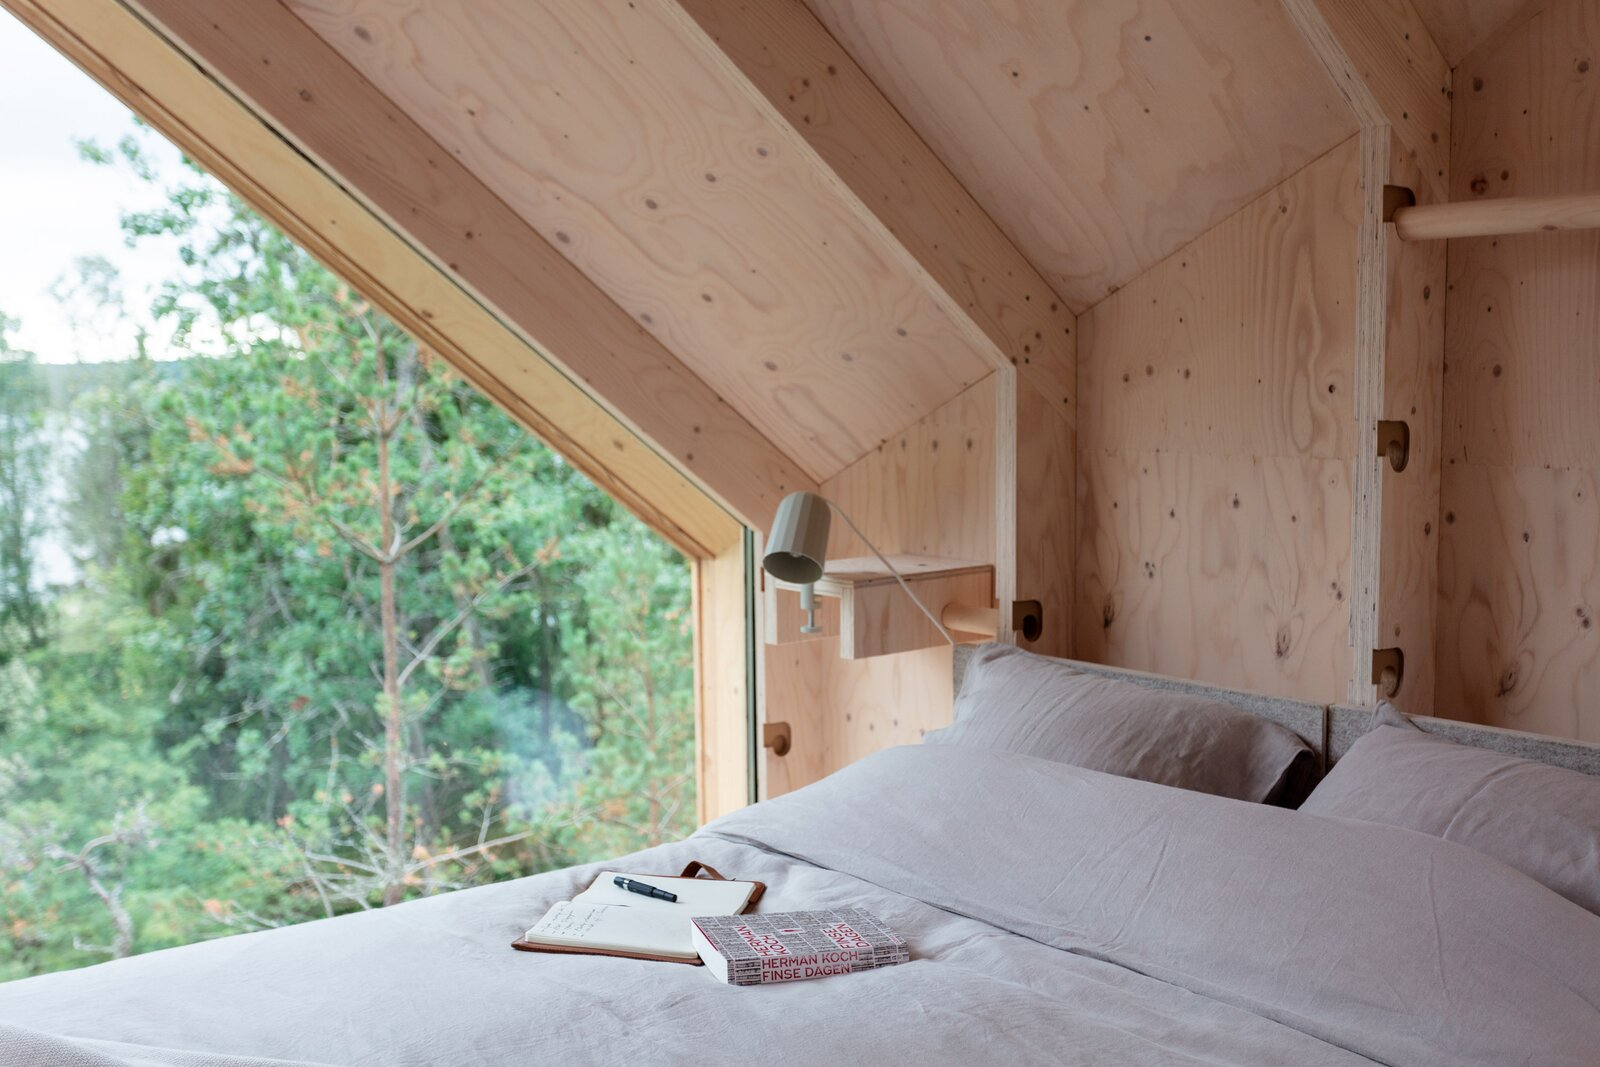 Space of Mind prefab cabin by Studio Puisto